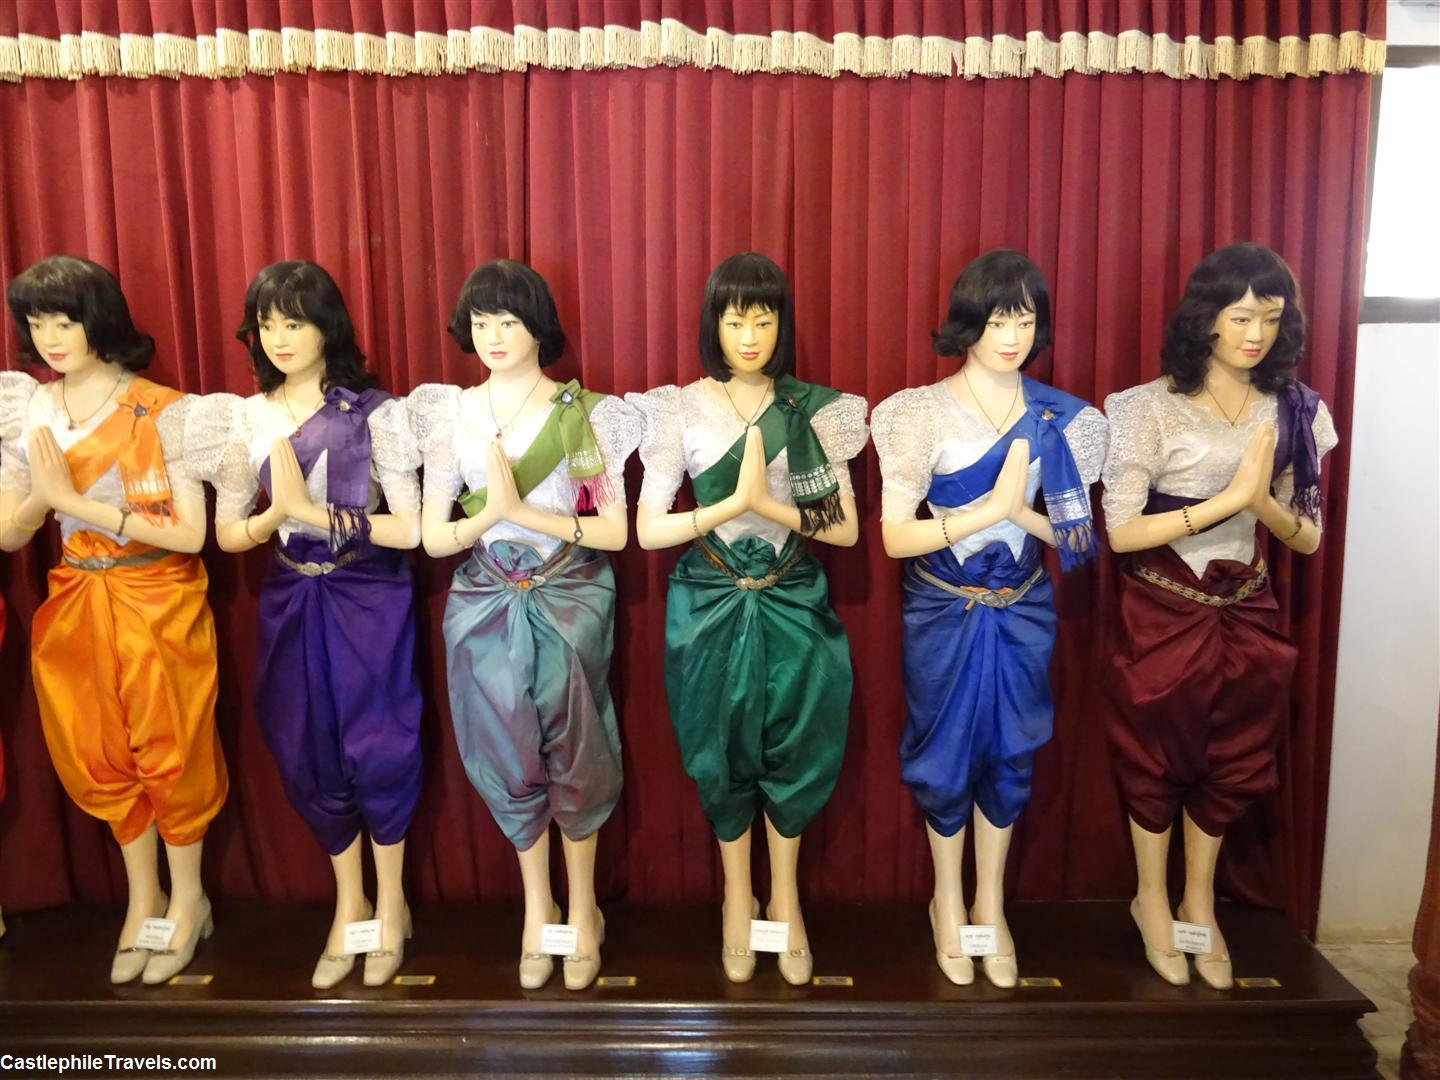 Mannequins inside the Hor Samritvimean wearing colourful costumes labelled as the days of the week.